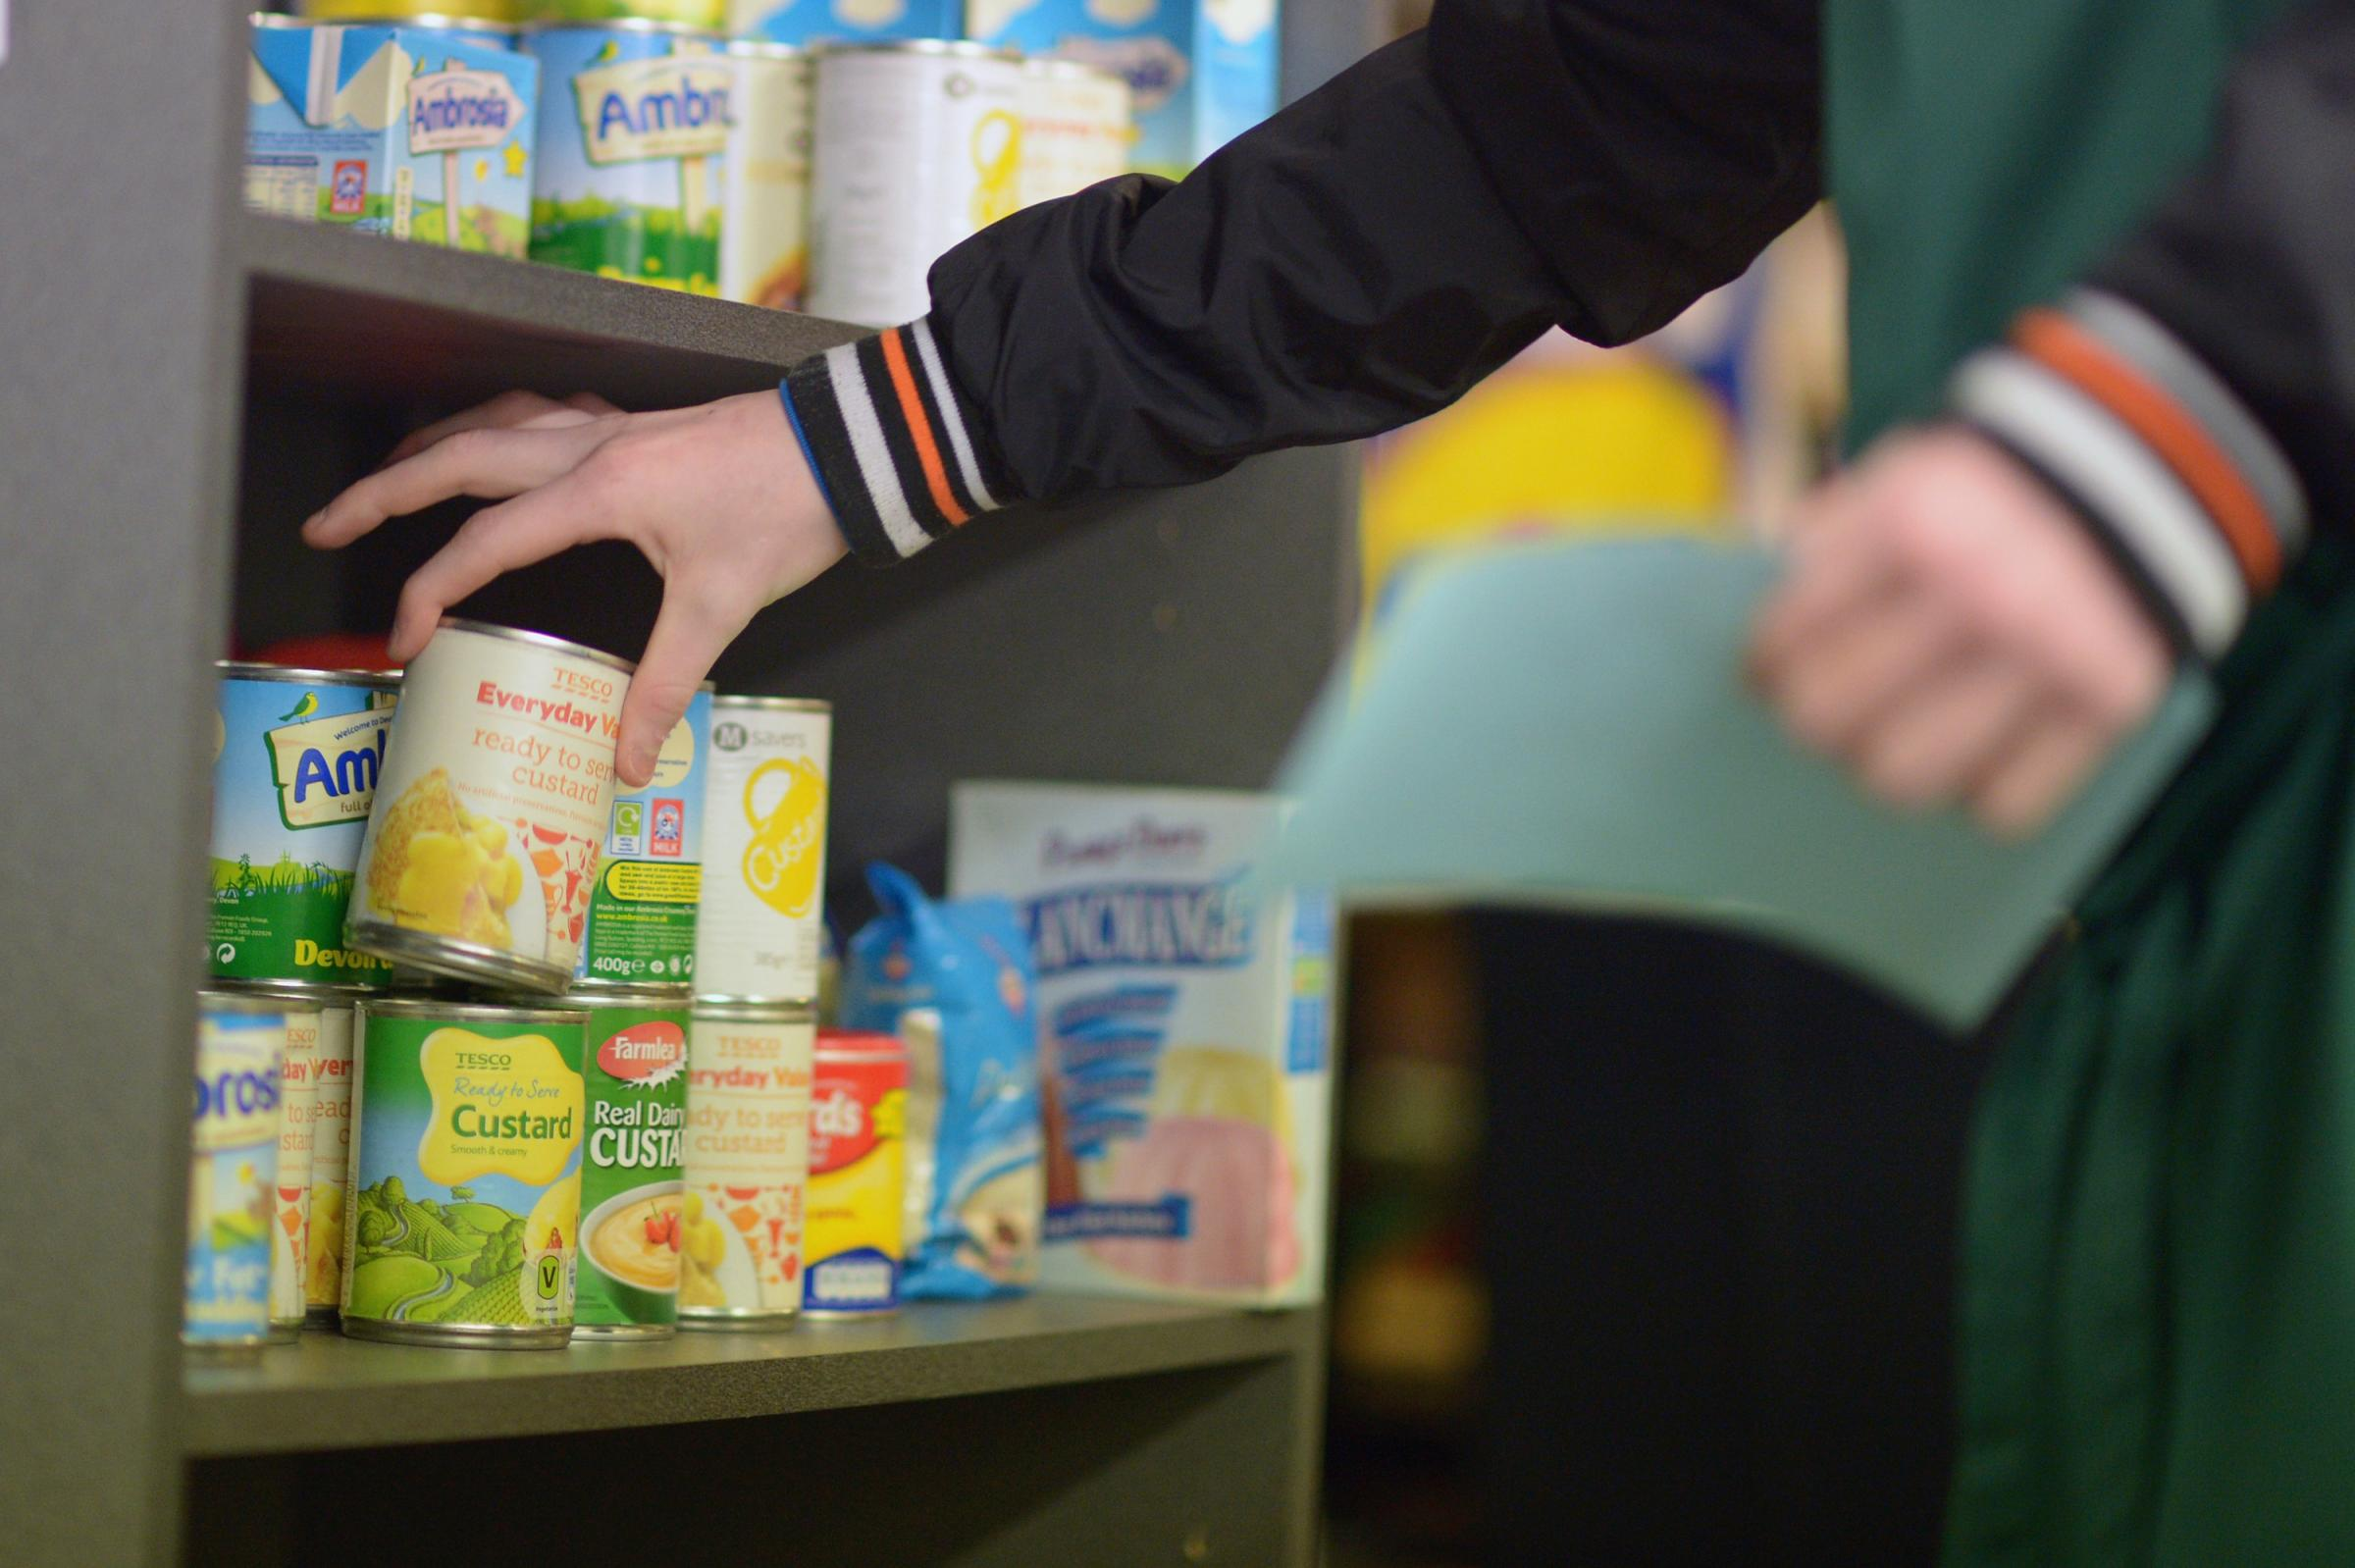 Scottish ministers propose shopping vouchers as a food bank alternative